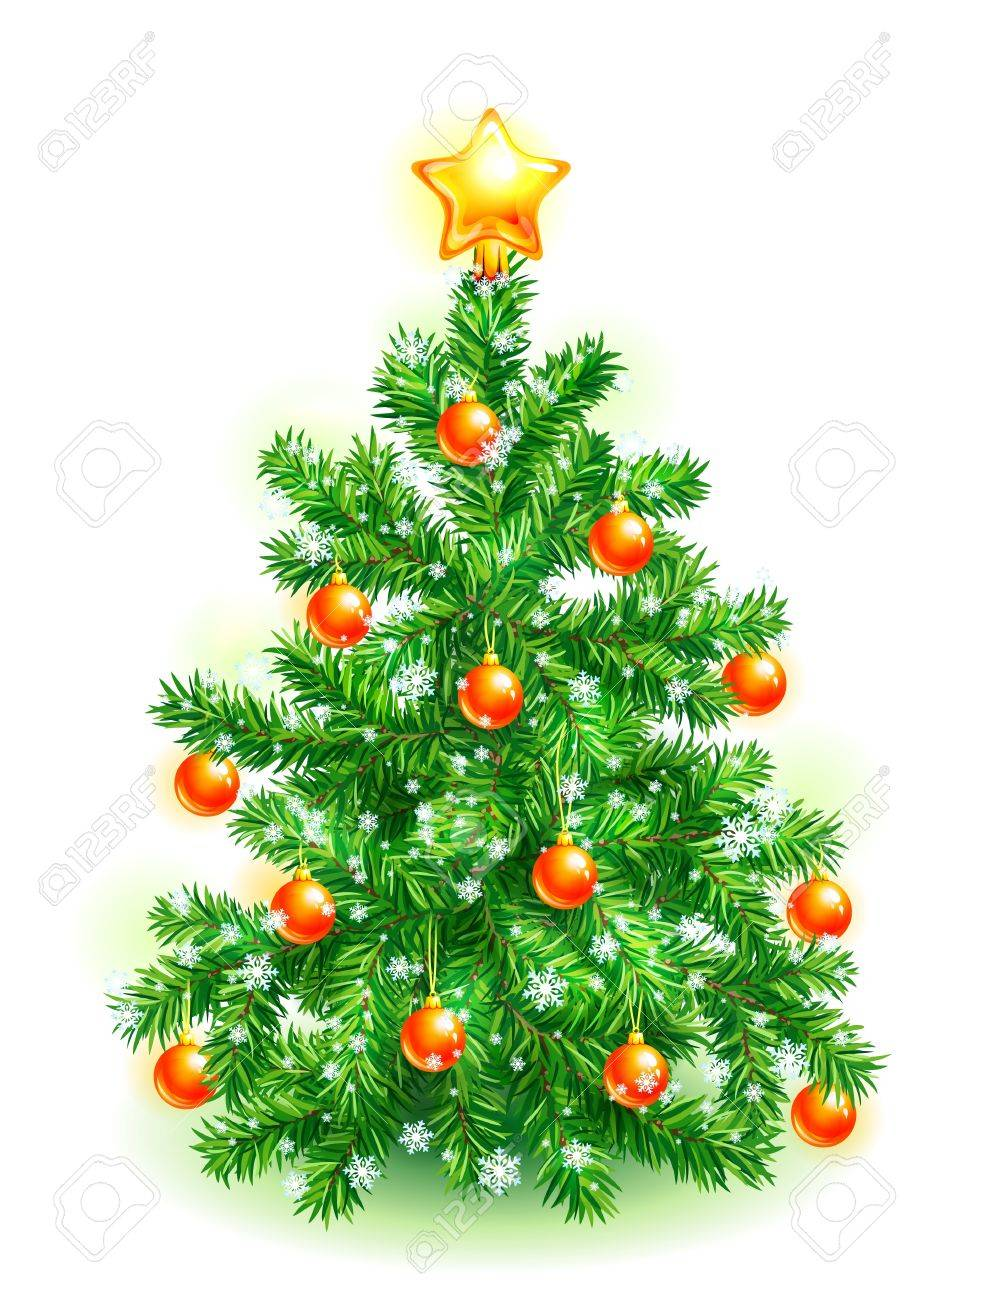 Christmas tree decorated with red balls, yellow star and snowflakes Stock Photo - 11307030